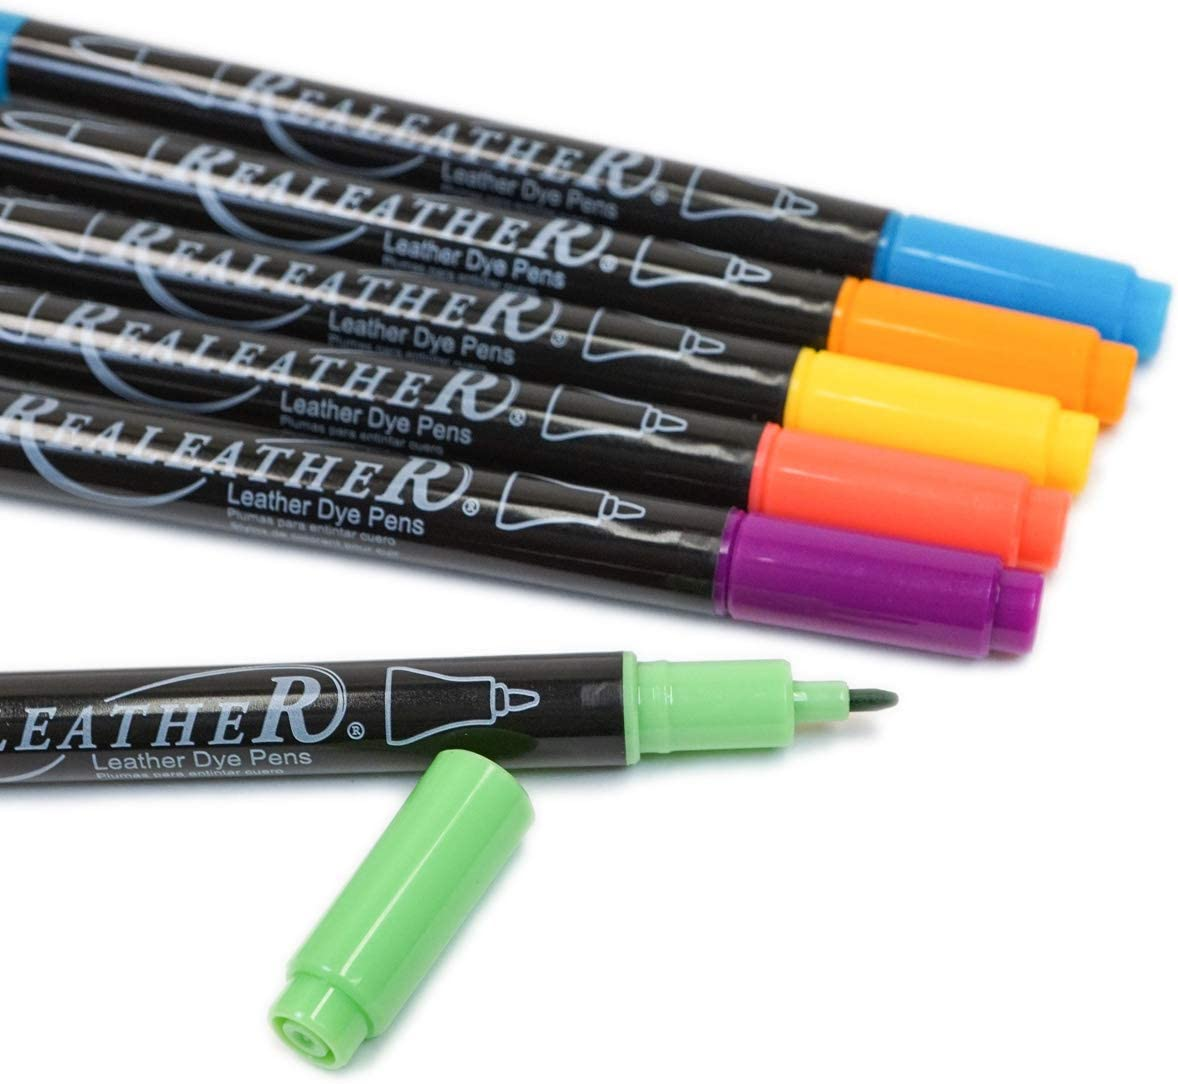 Realeather F2400-05 Leather Dye Pens 6-Pack 6 Bright Colors